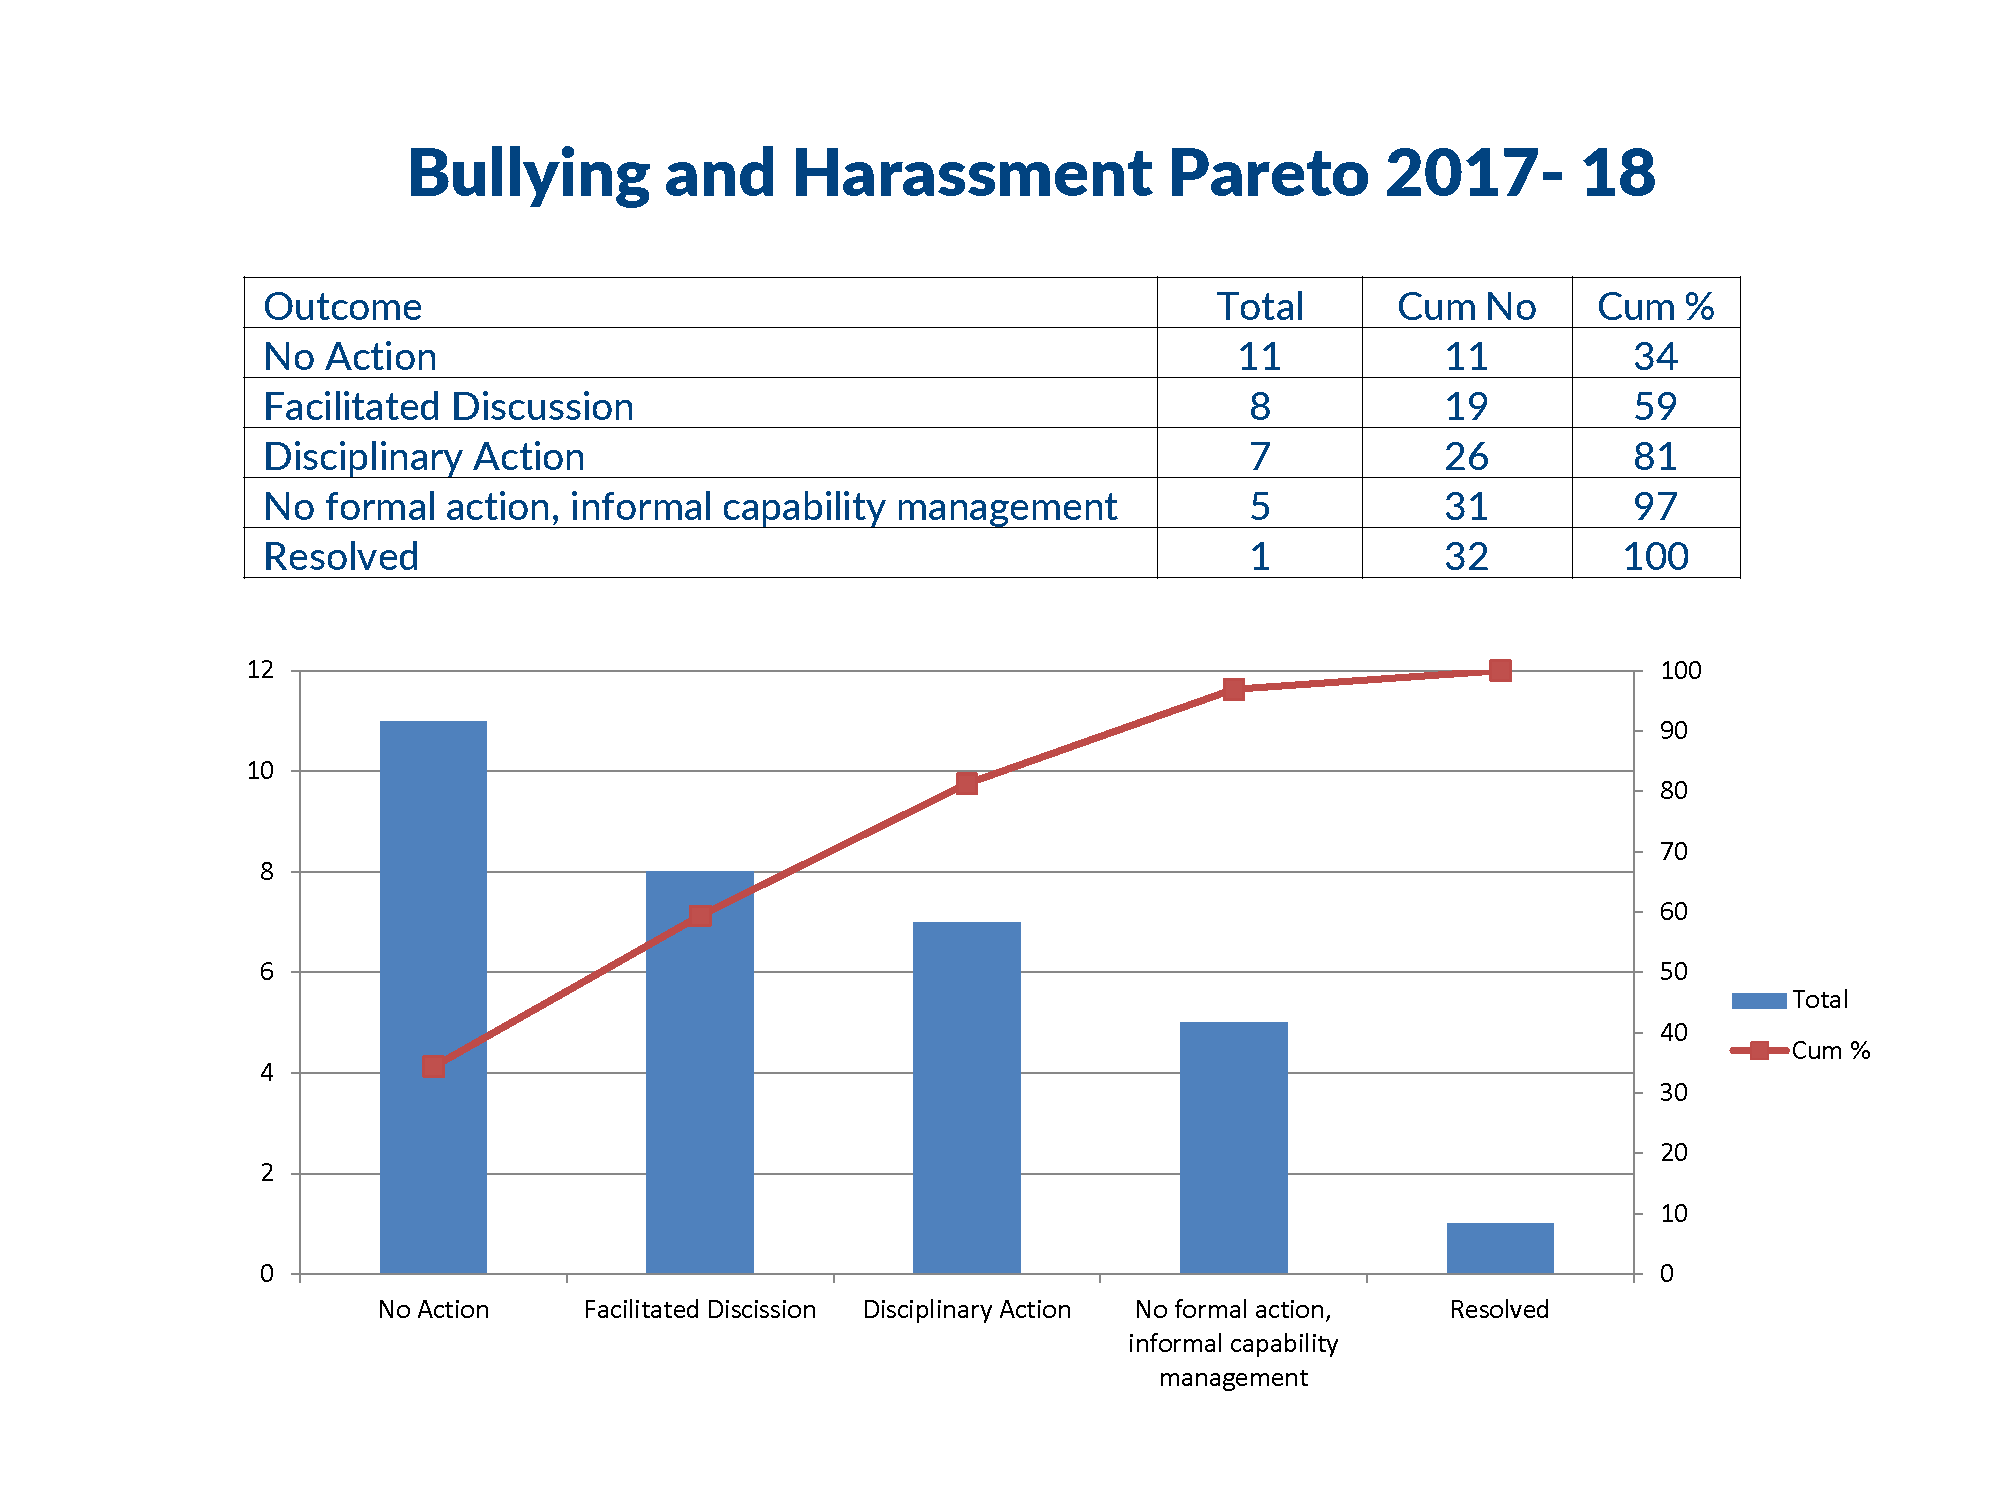 Bullying and Harrassment Pareto.png